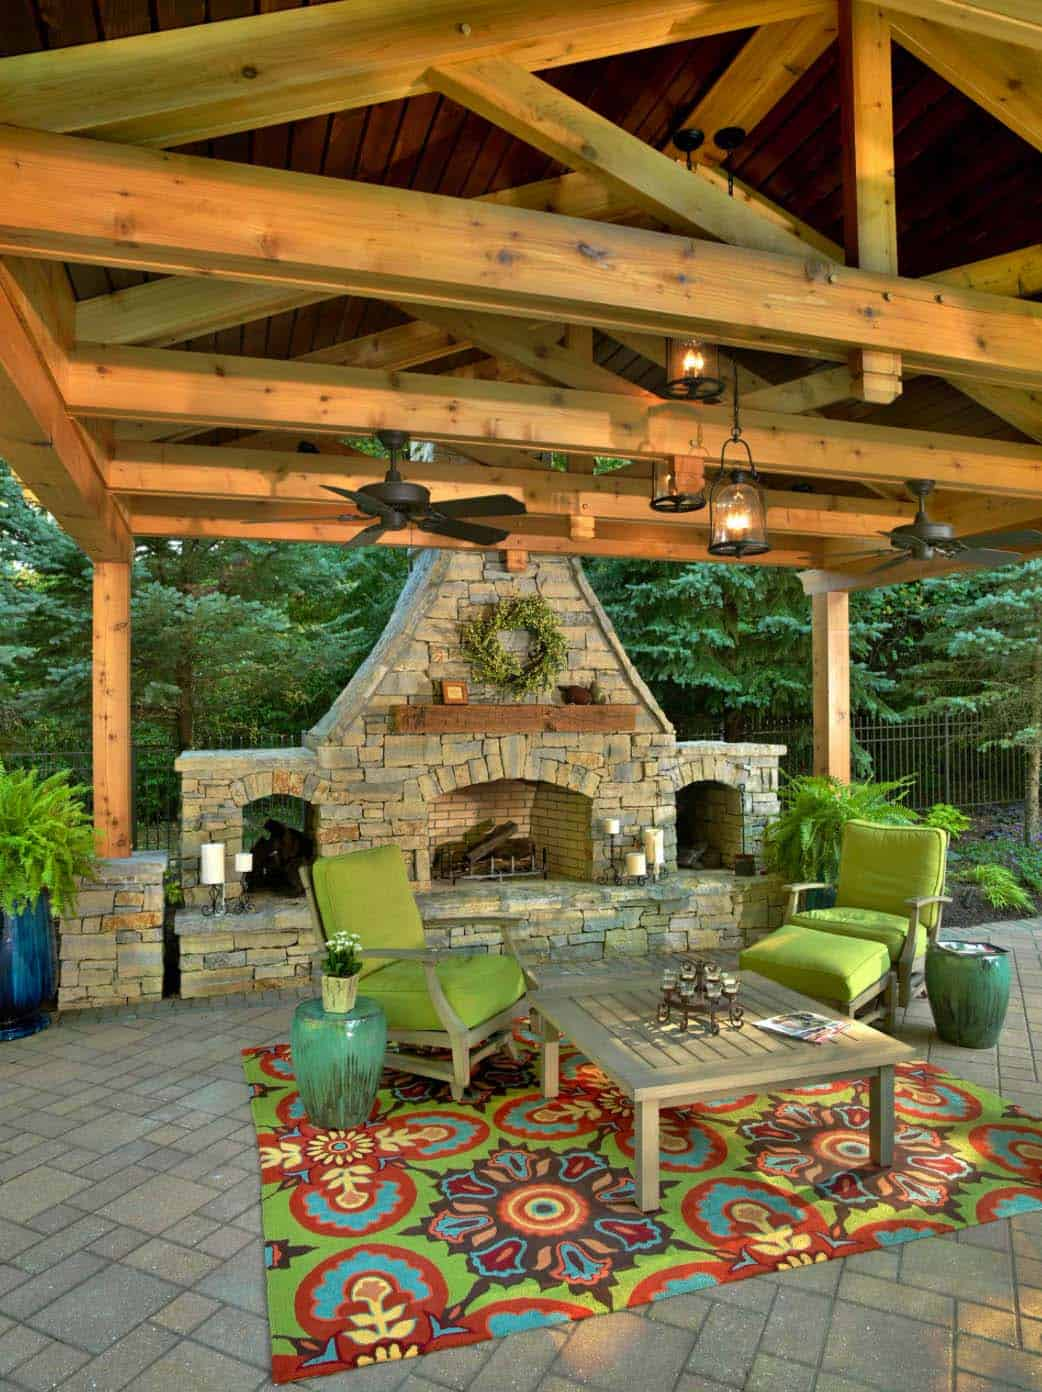 44 Traditional outdoor patio designs to capture your ... on Small Outdoor Covered Patio Ideas id=76618